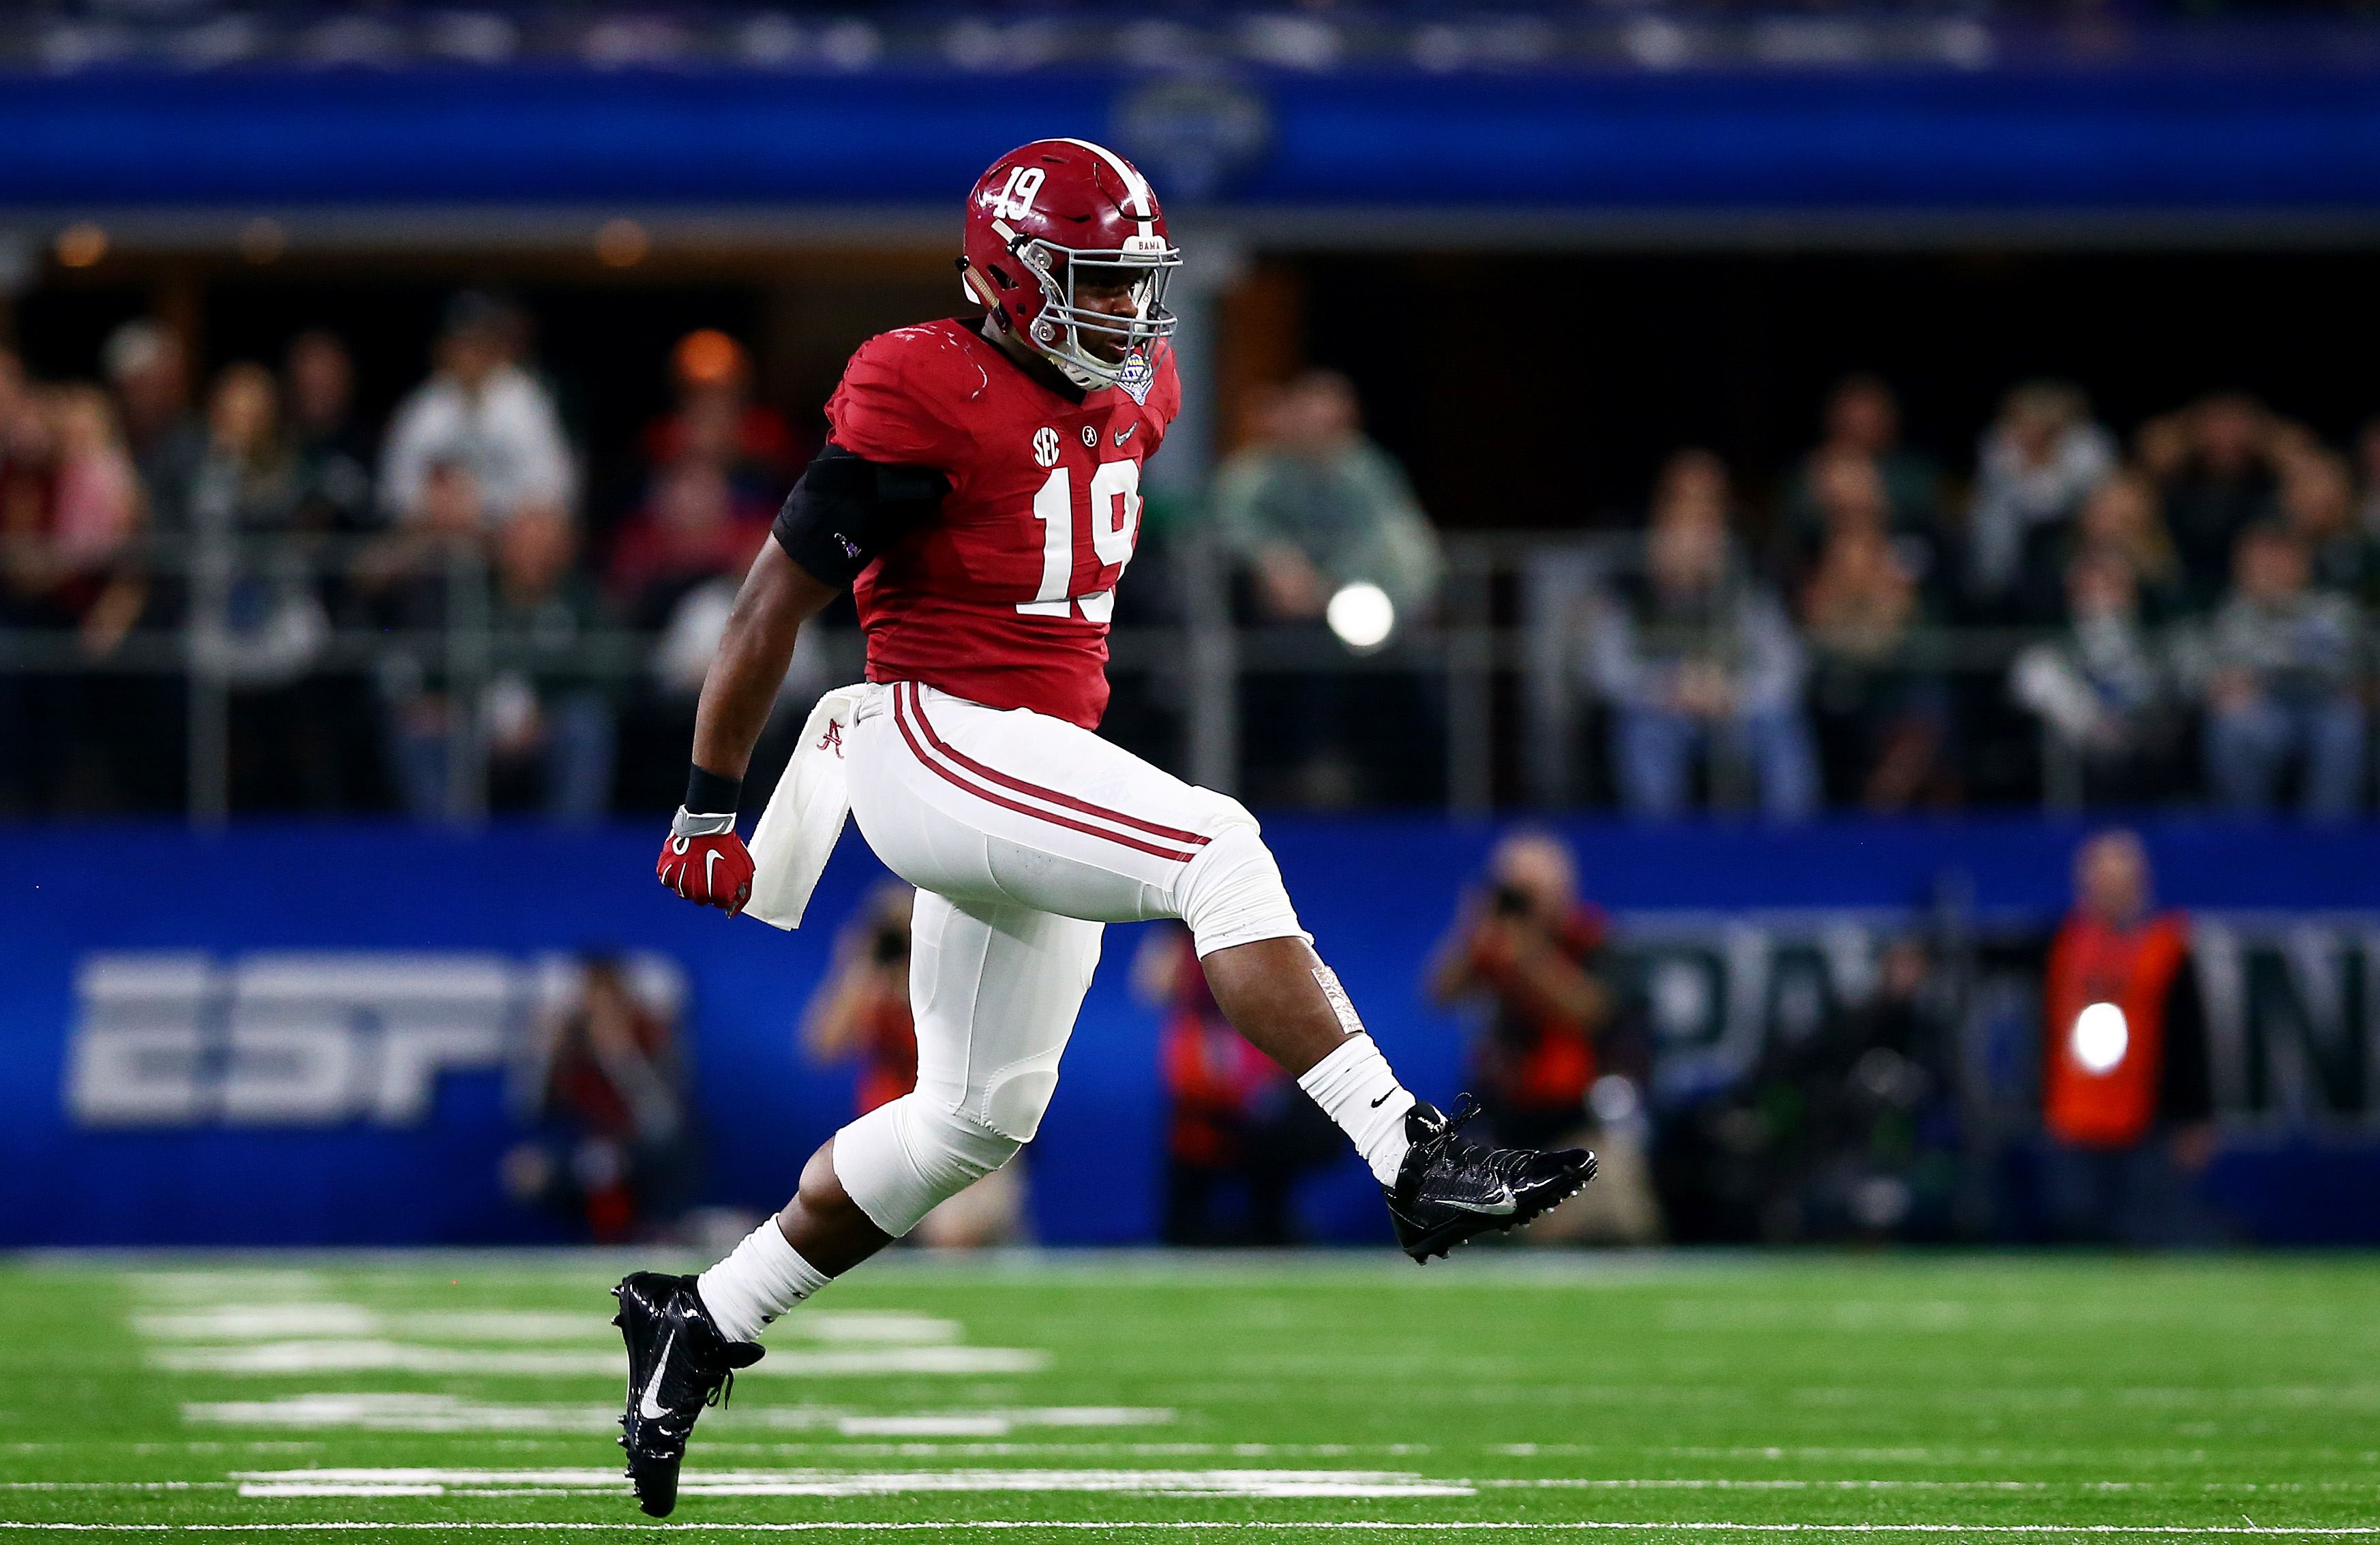 Linebacker Reggie Ragland of the Alabama Crimson Tide reacts after stopping the Michigan State Spartans on third down during the Goodyear Cotton Bowl. (Getty Images)